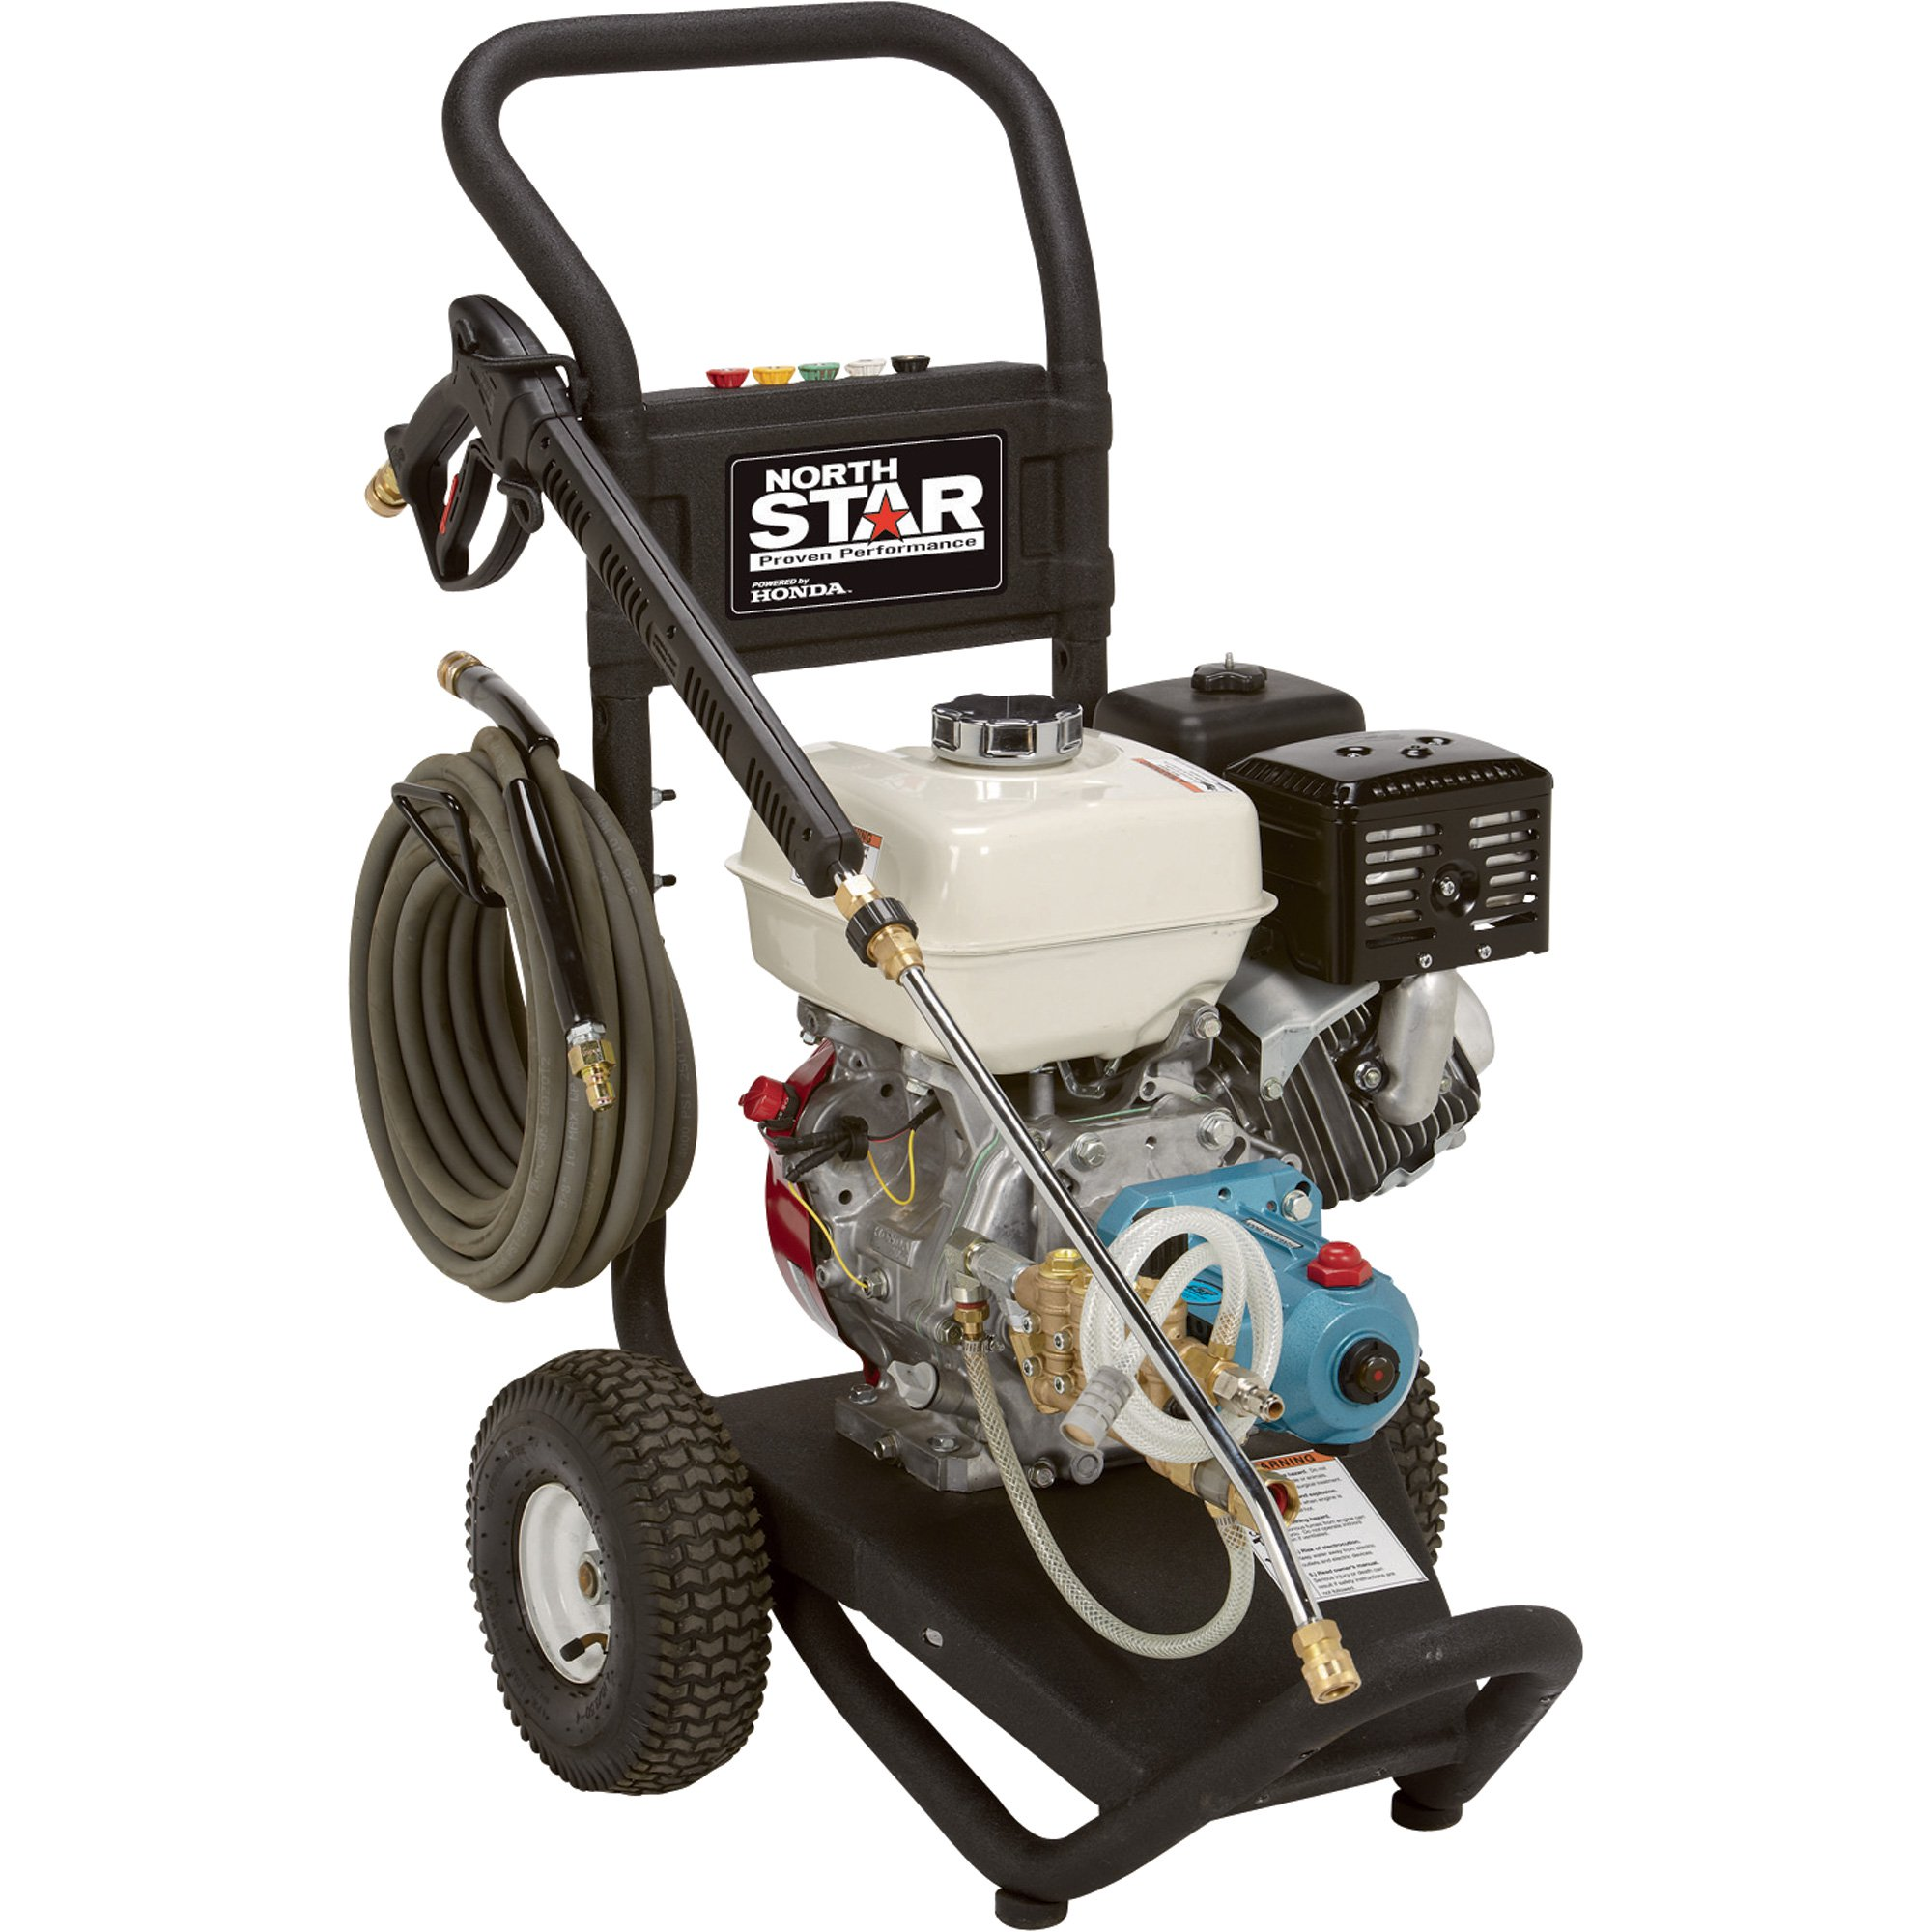 NorthStar 15781820 Gas Cold Water Pressure Washer 3300 PSI 3.0 GPM Honda Engine Freight Included